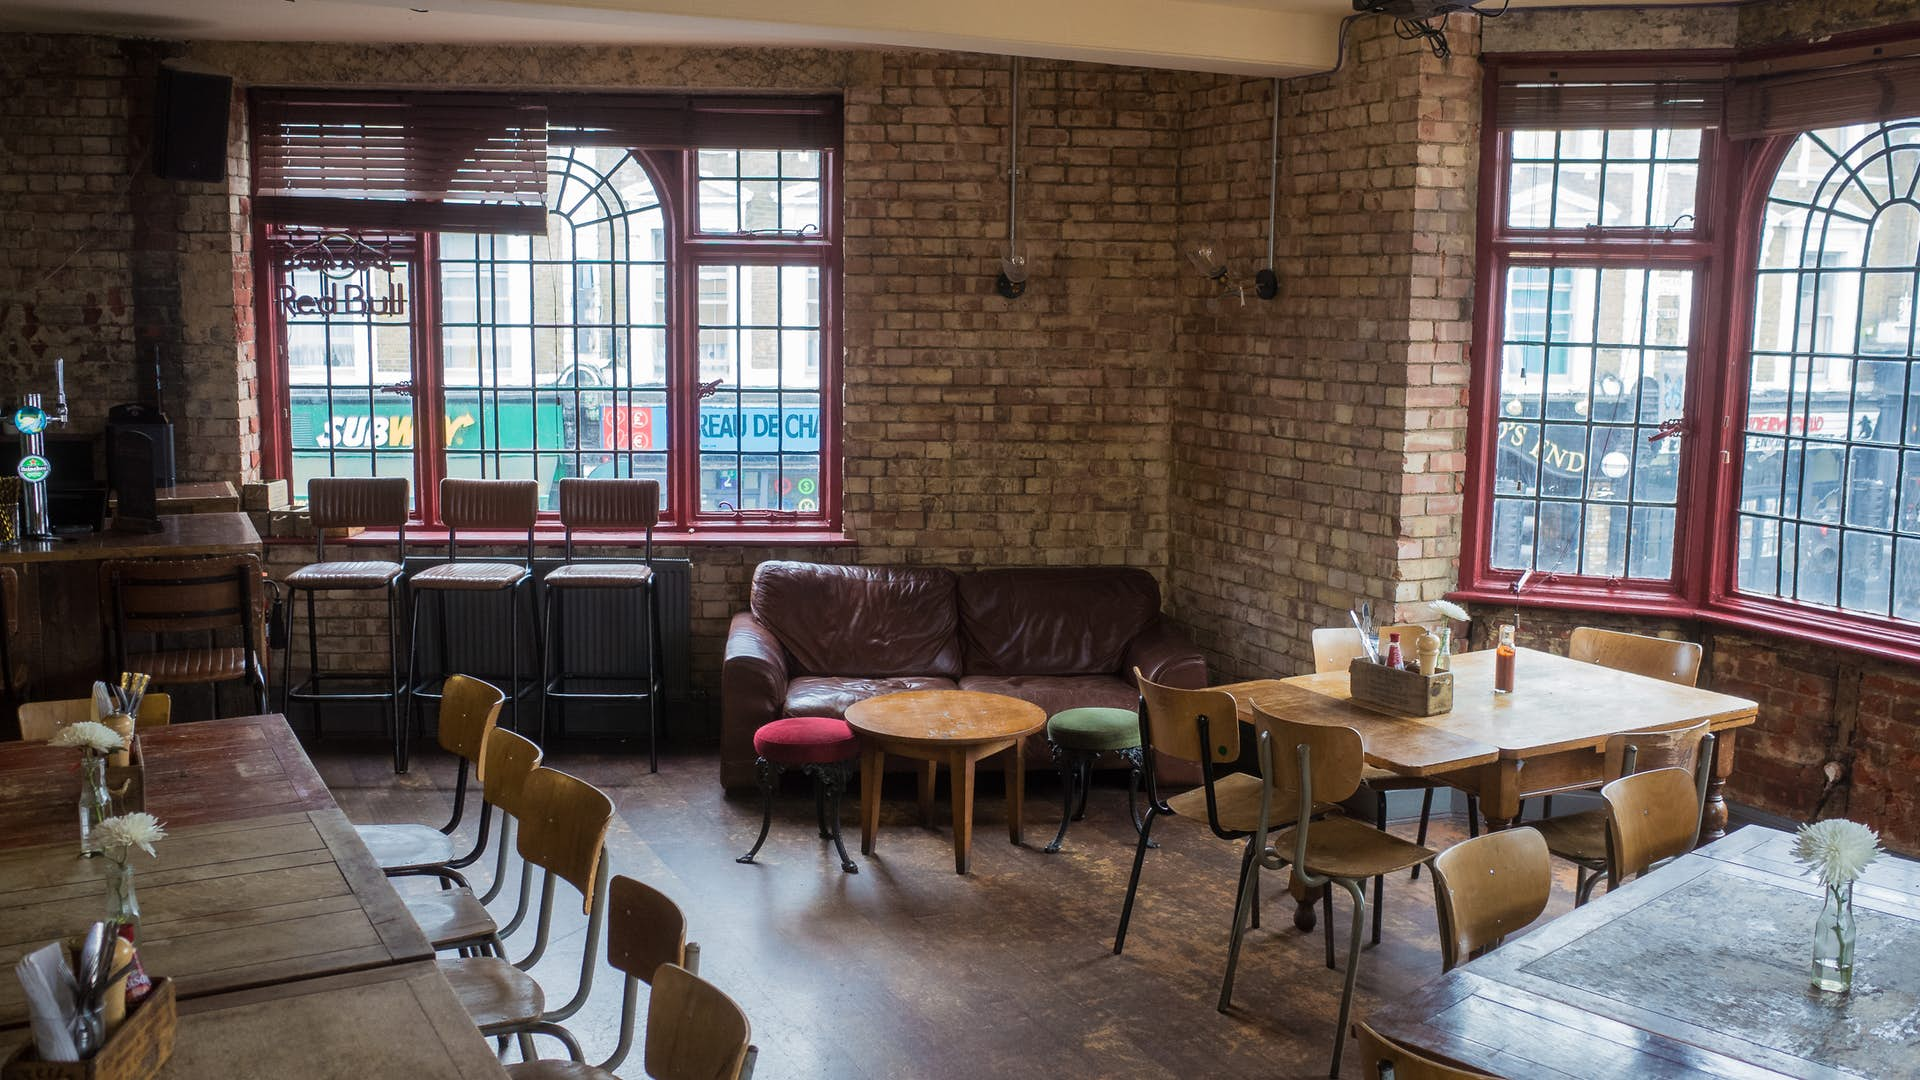 function of dining room | Function Room | Dining | The Camden eye